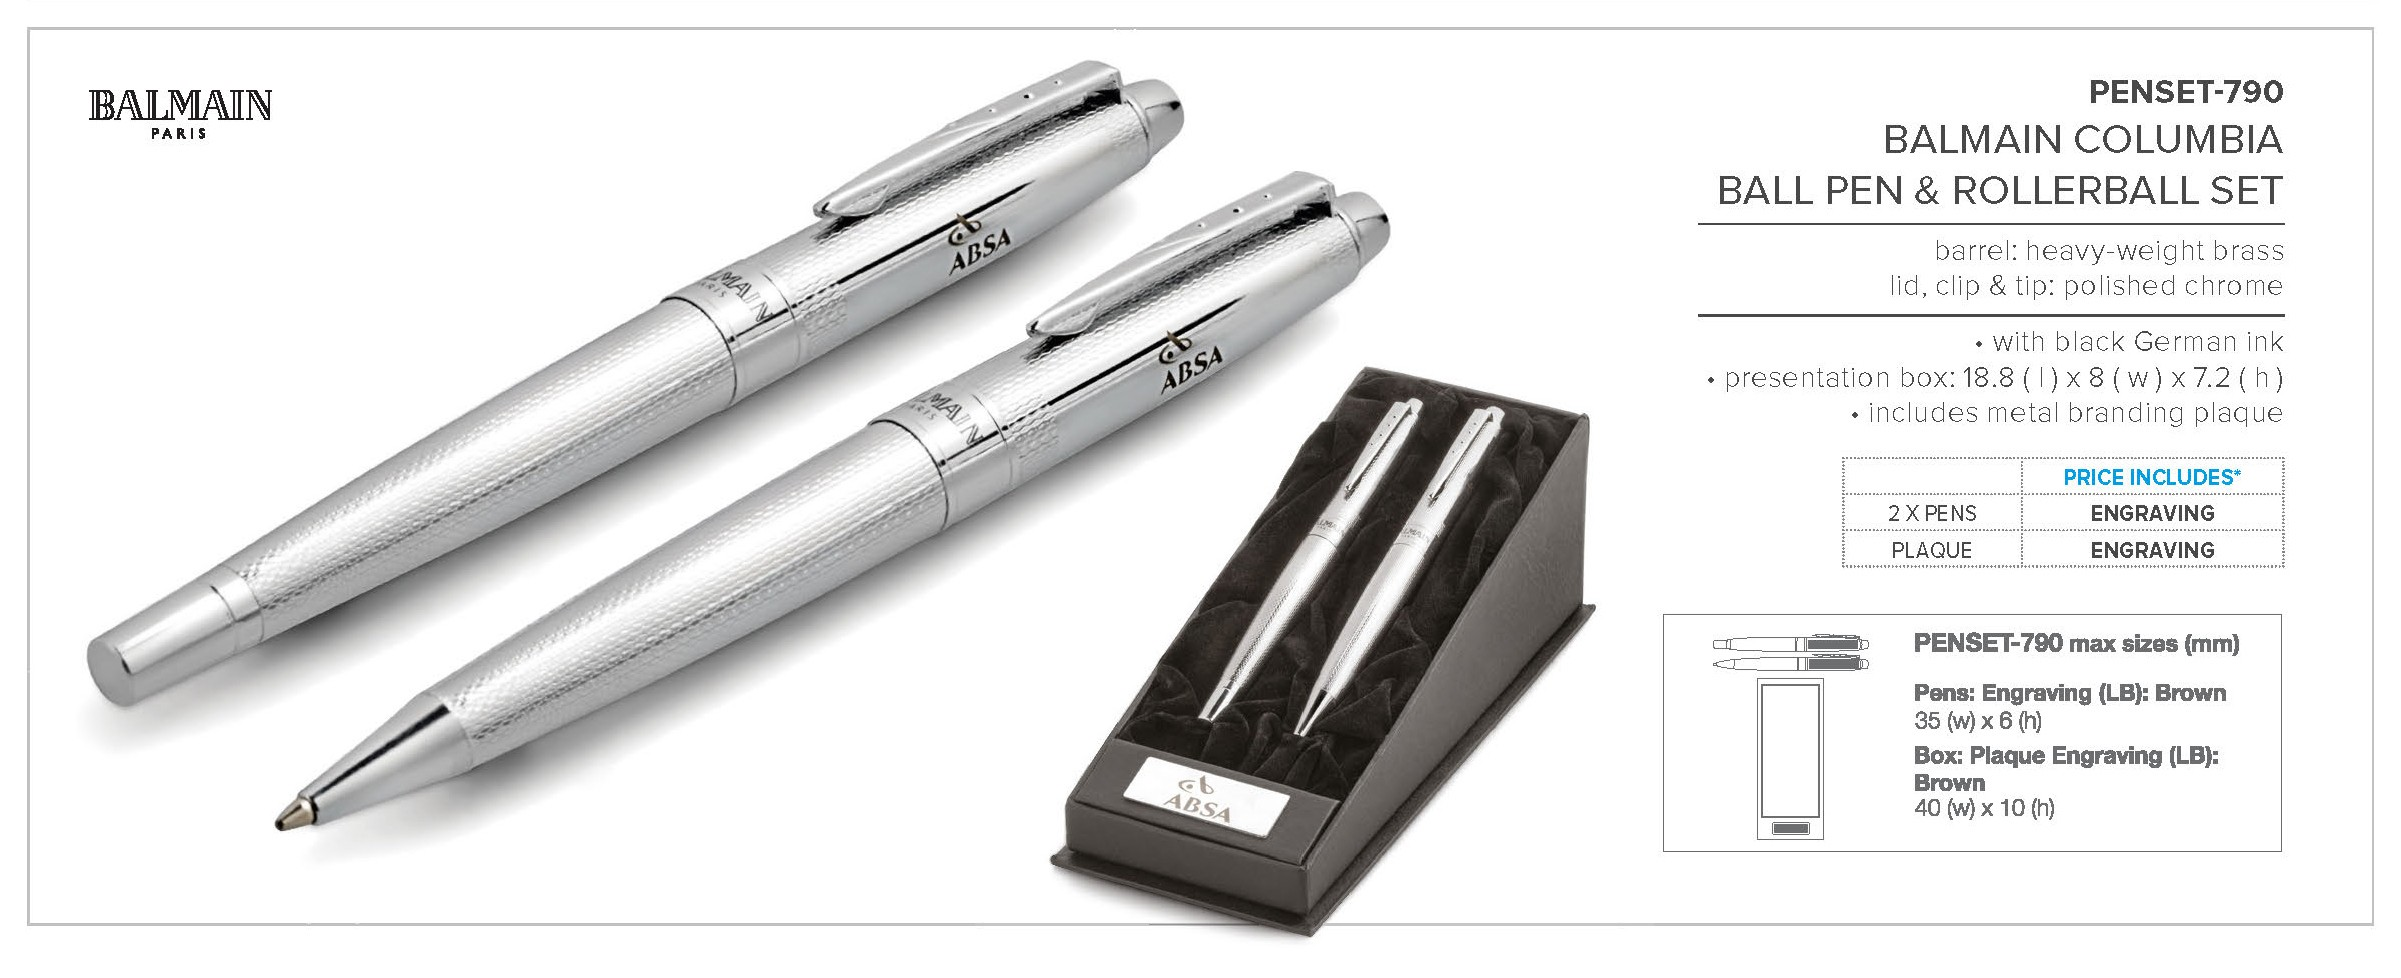 This Stylish Metal Rollerball Pen Is The Perfect Companion To Any Faber Castell Neo Slim Ballpoint Stylus Stainless Steel Matt An Elegant And Balmain Ball